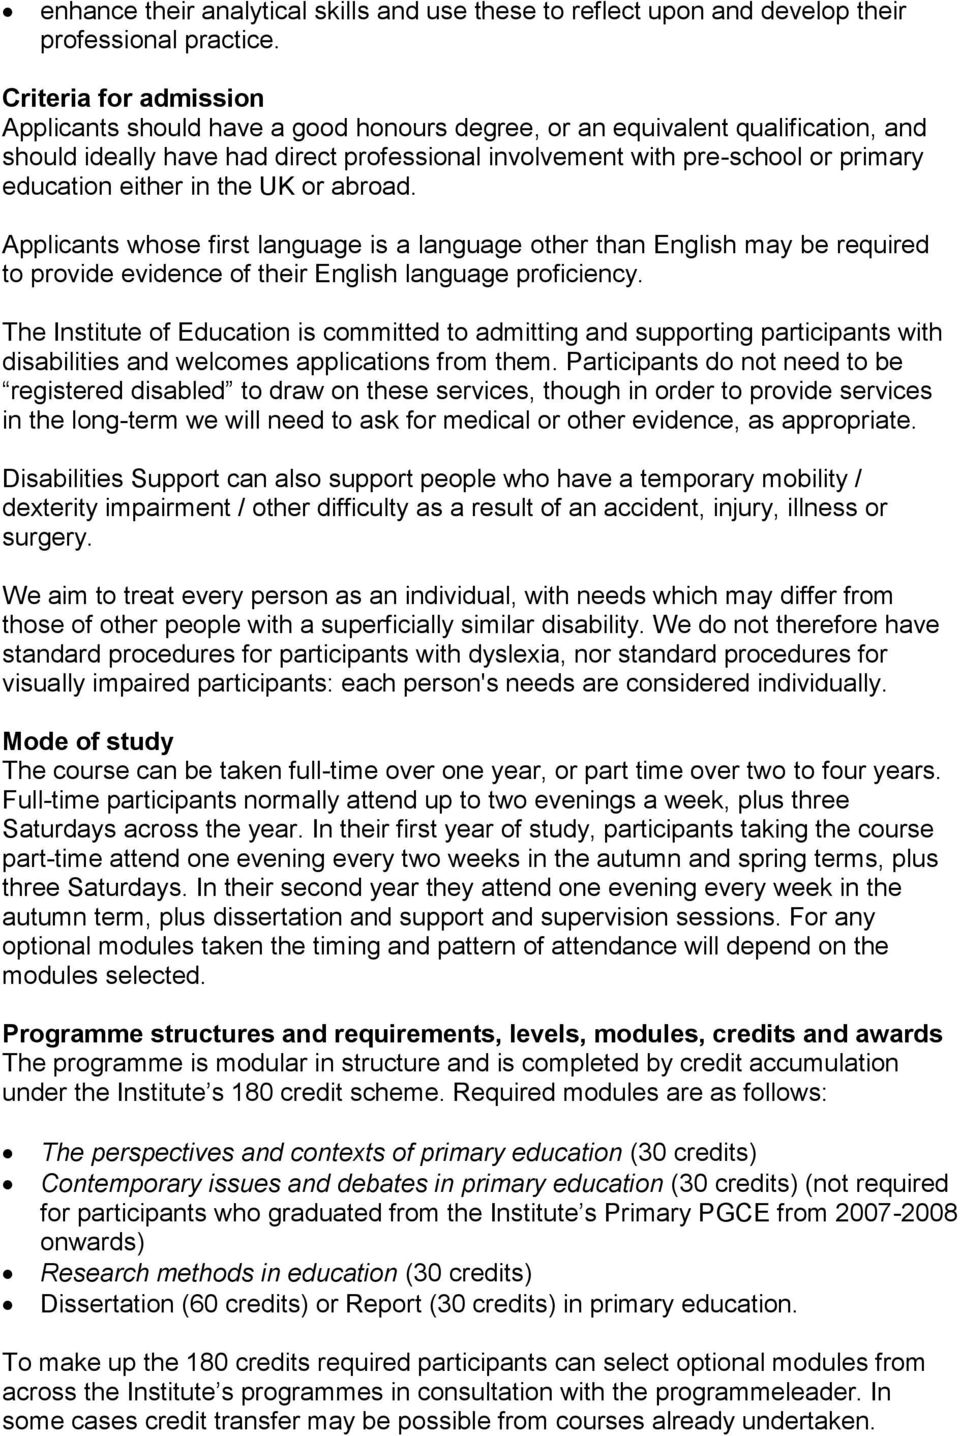 either in the UK or abroad. Applicants whose first language is a language other than English may be required to provide evidence of their English language proficiency.